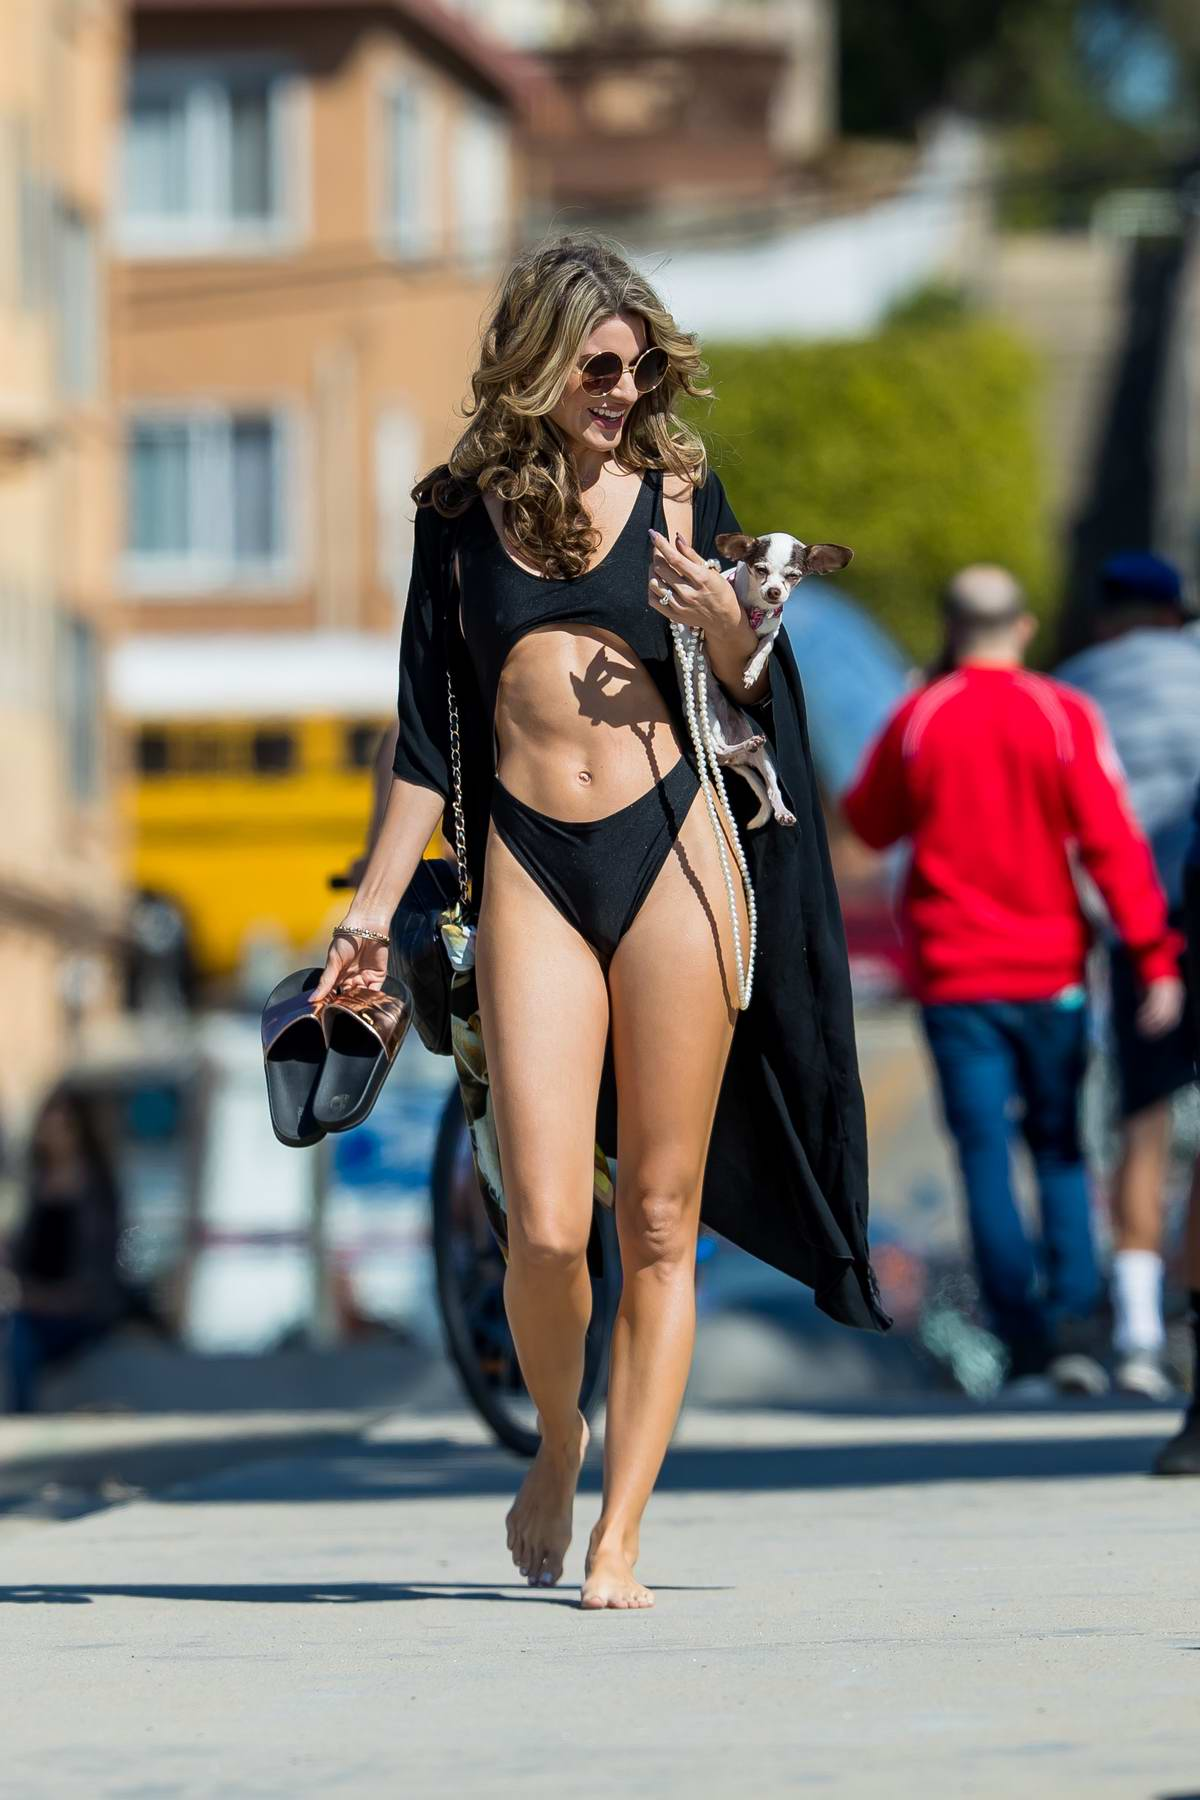 Rachel McCord wears a black bikini as she hits the beach with her dog in Santa Monica, California